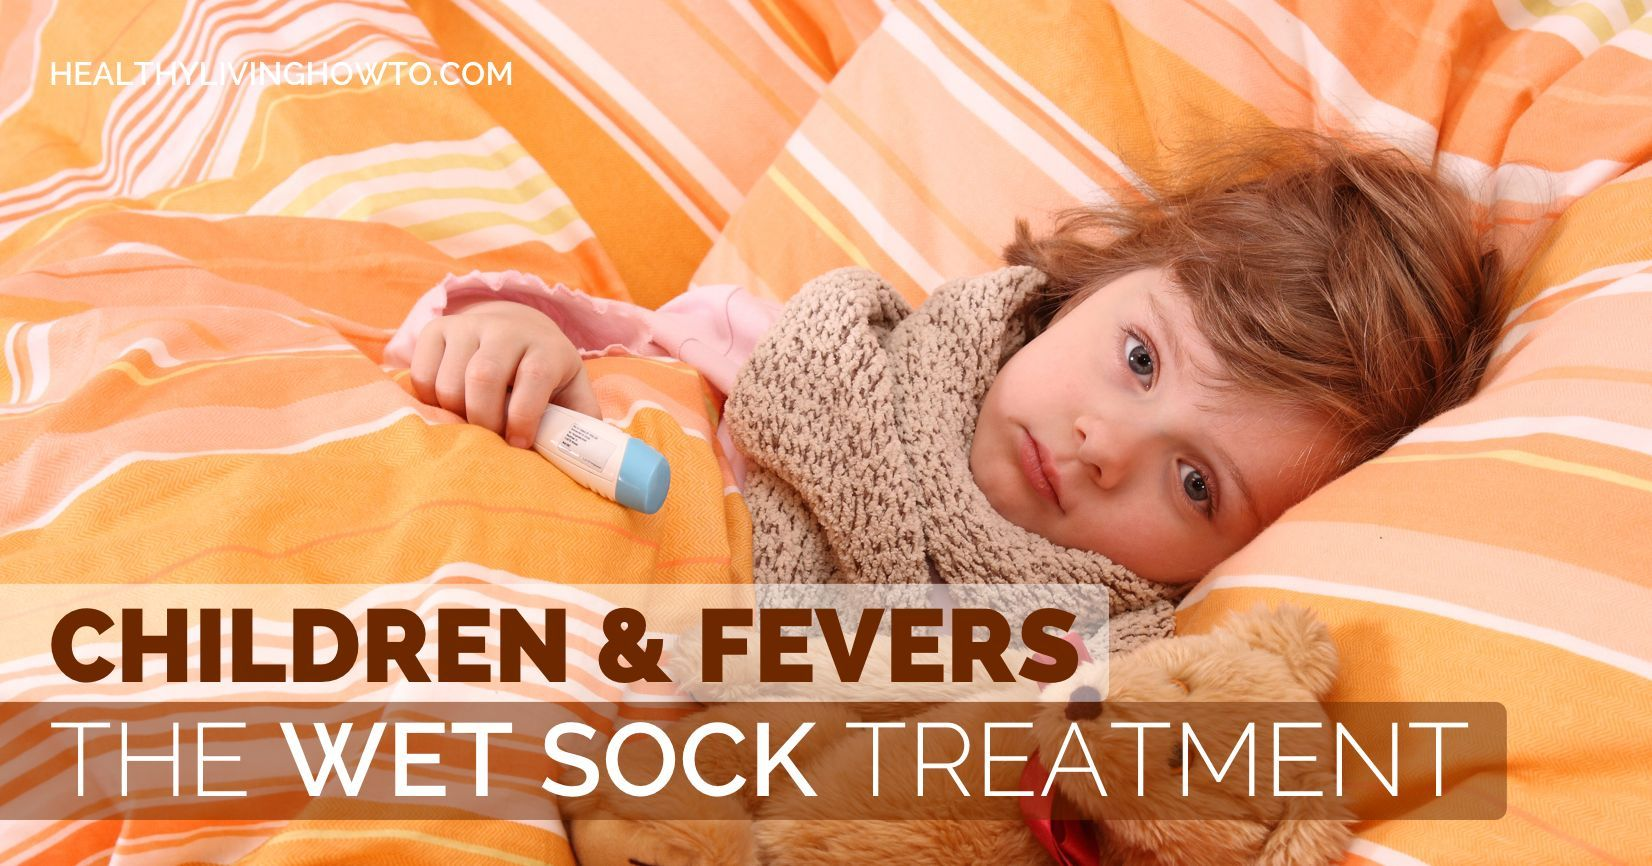 Wet Sock Treatment for Fever